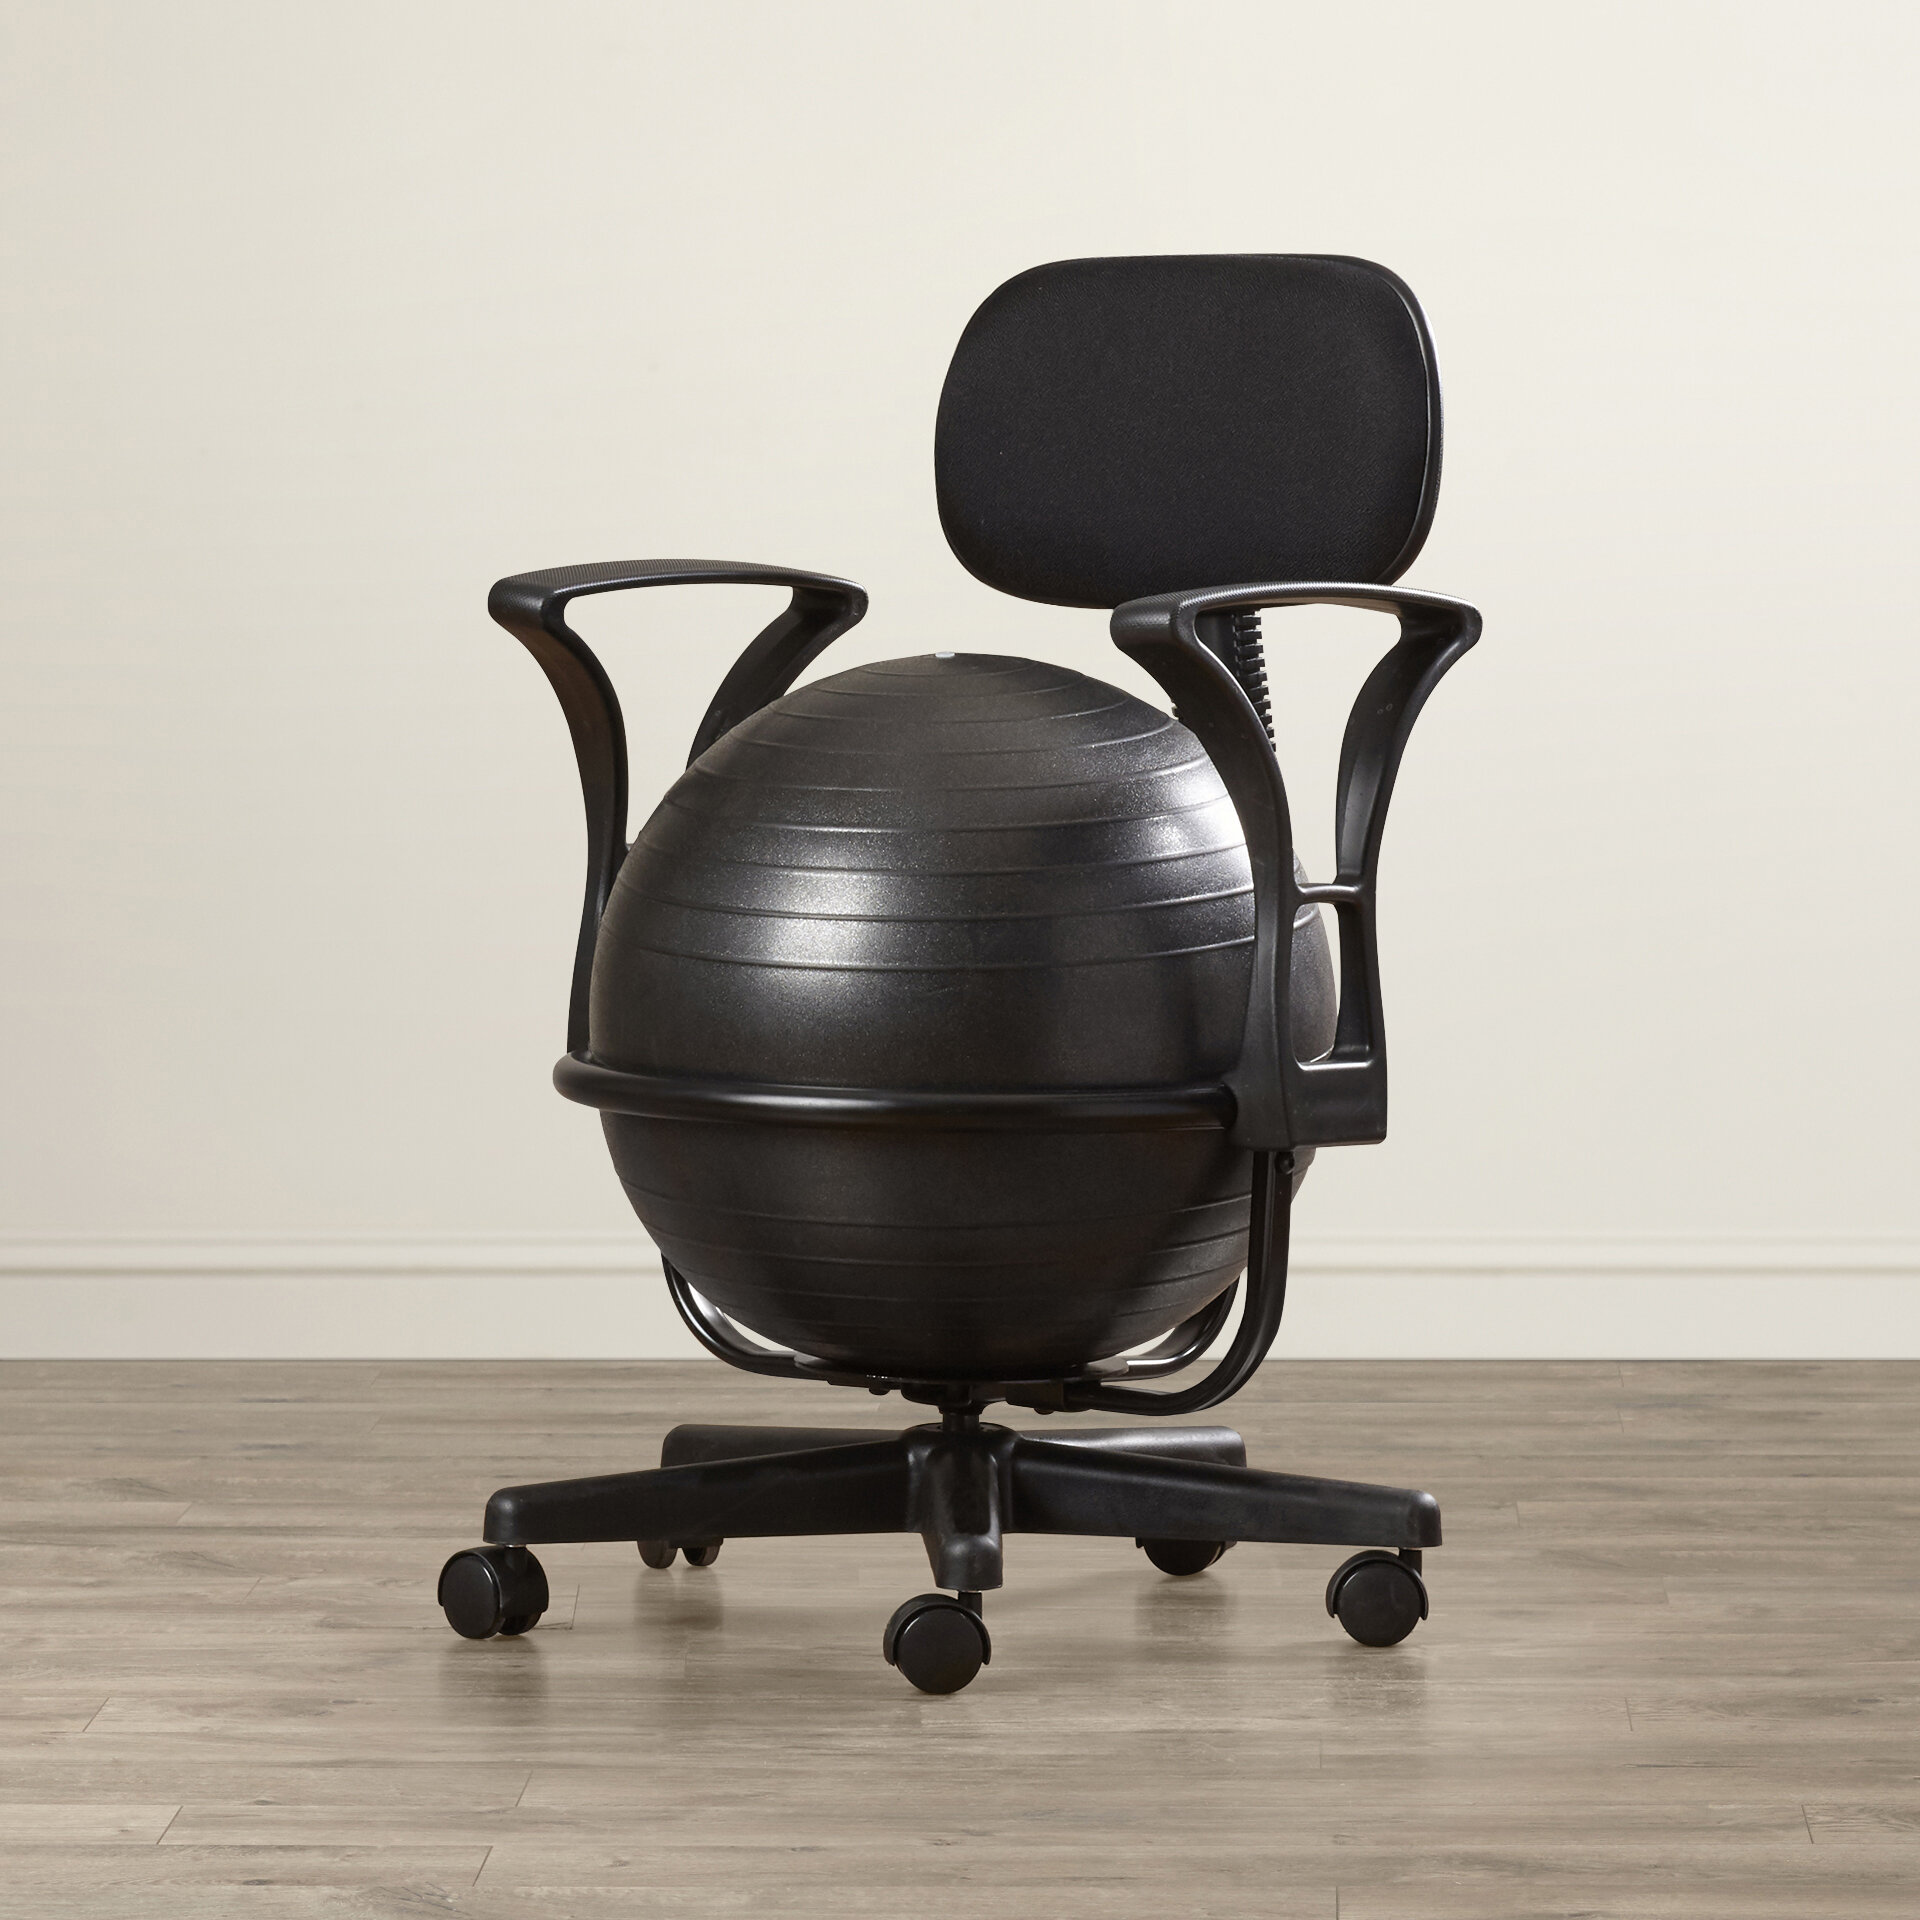 Merveilleux Symple Stuff Exercise Ball Chair U0026 Reviews | Wayfair